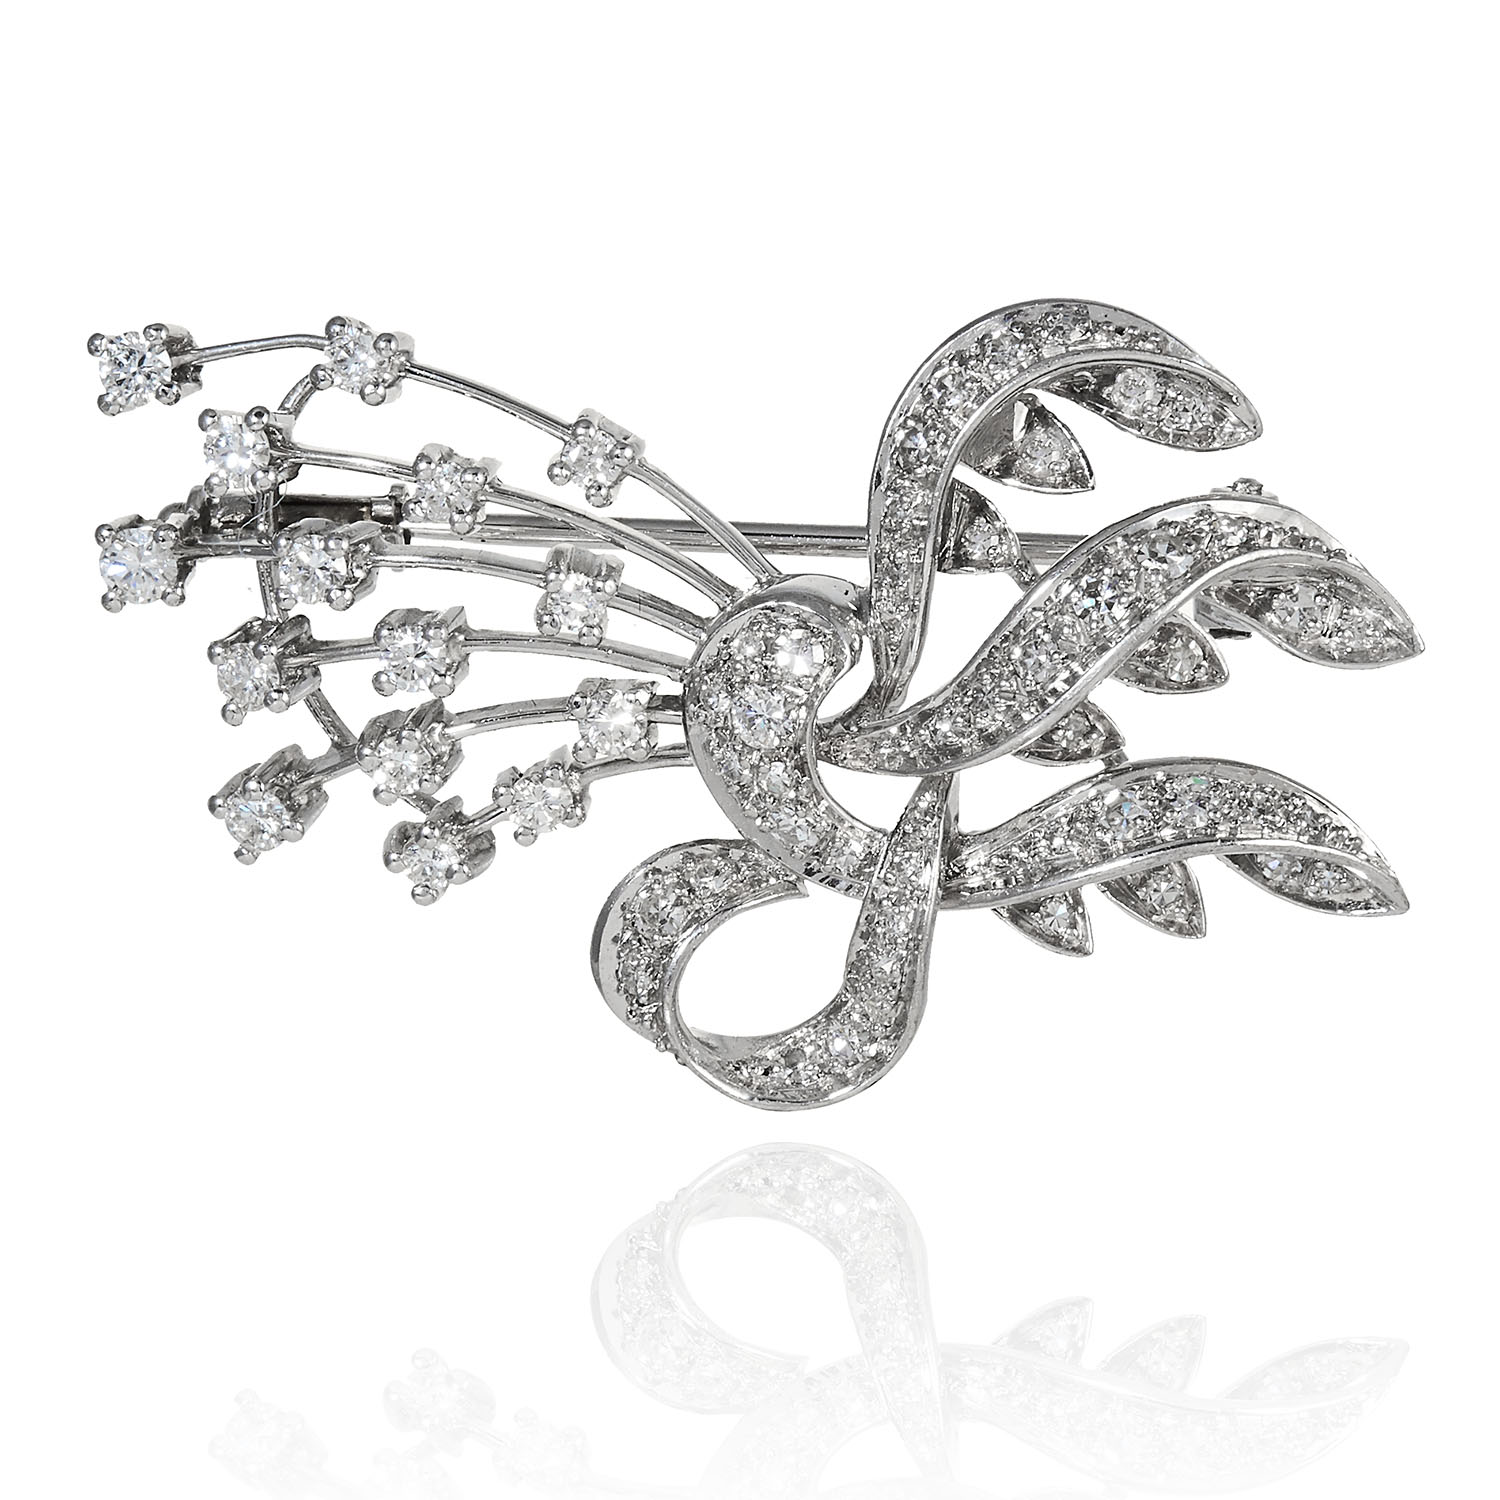 A VINTAGE DIAMOND BROOCH in 18ct white gold, in ribbon motif and bow motif, jewelled with round